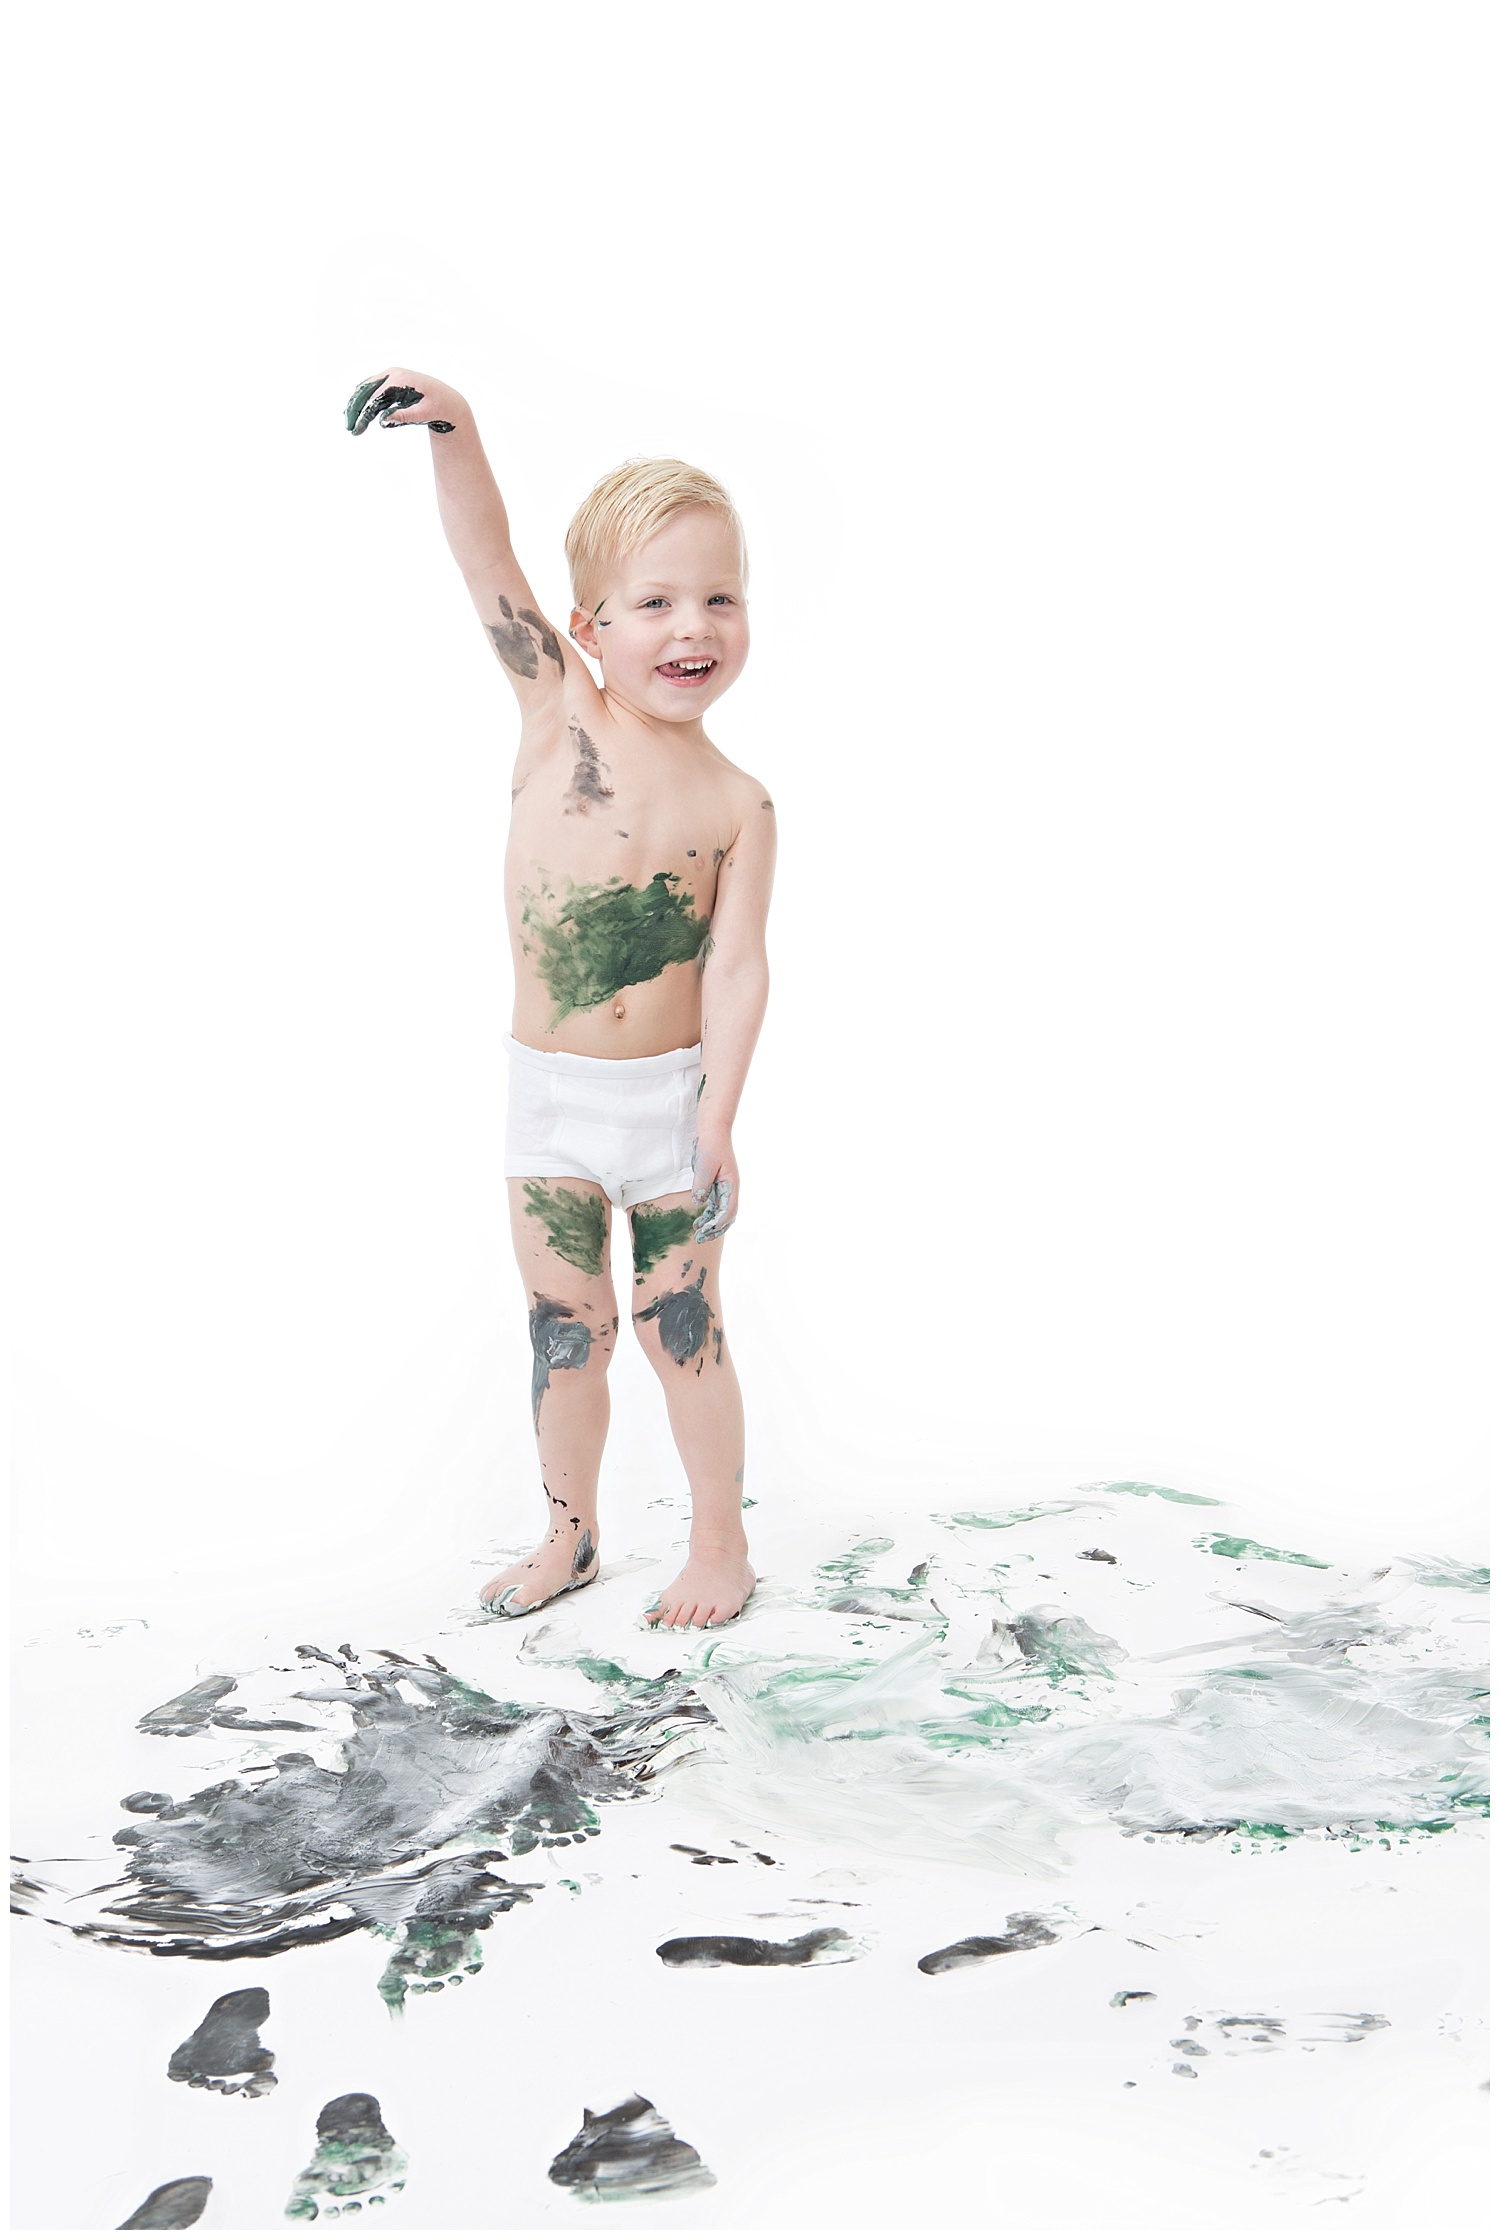 Andrea-Burolla-Photography-Denver-Childrens-photographer-kids-paint-session-little-boy-silly-playing-covered-paint-black-green